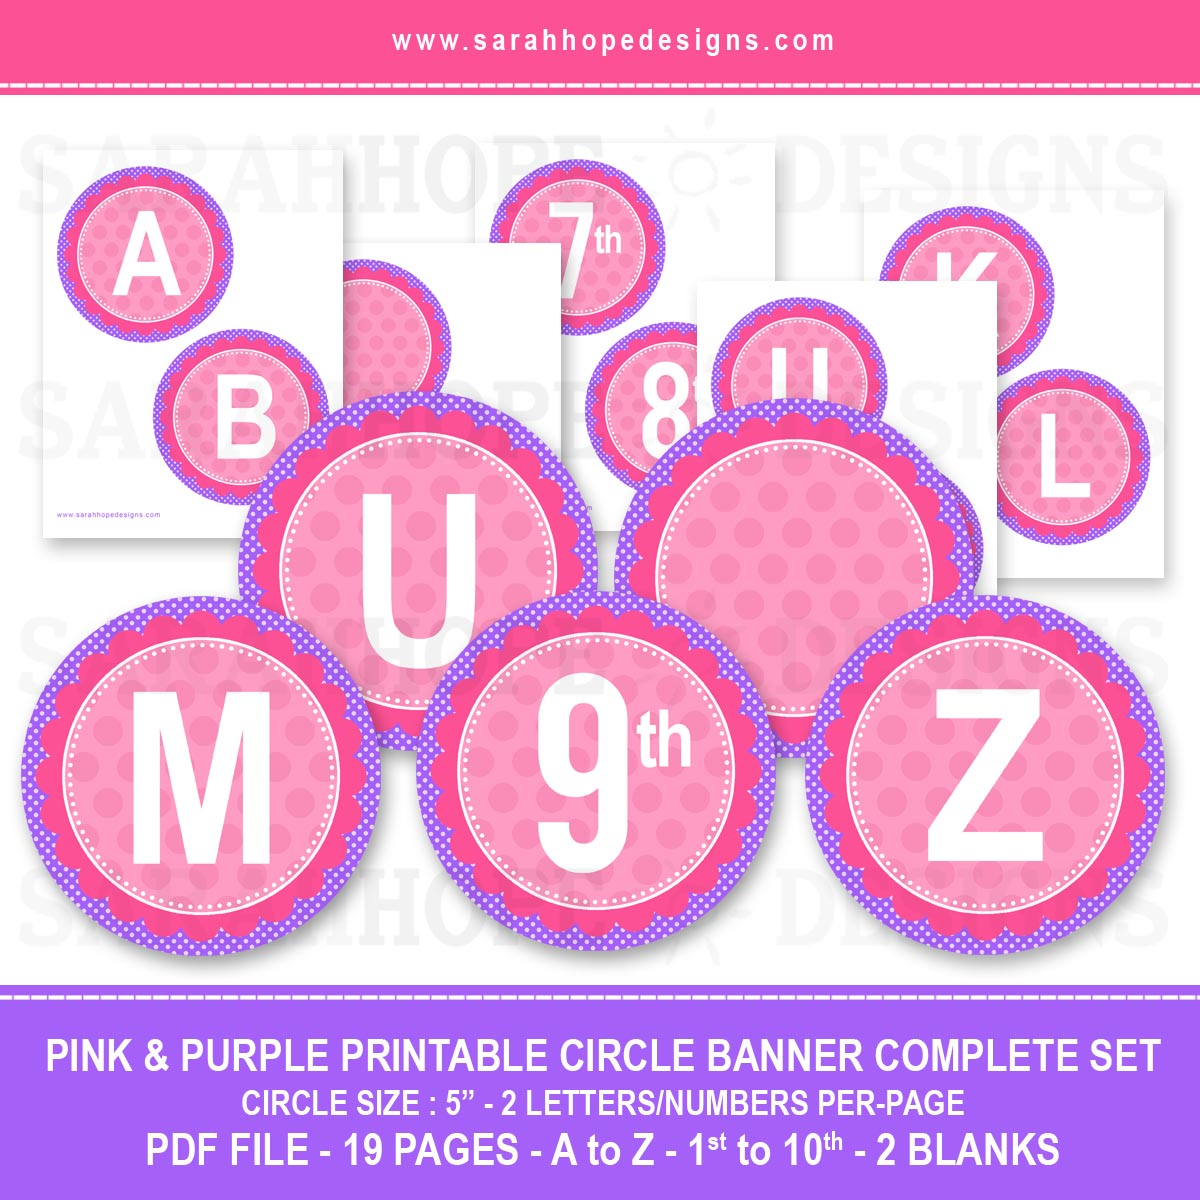 picture about Printable Letter for Banners named Spell Out One thing With this sort of Cost-free Alphabet Circle Banners